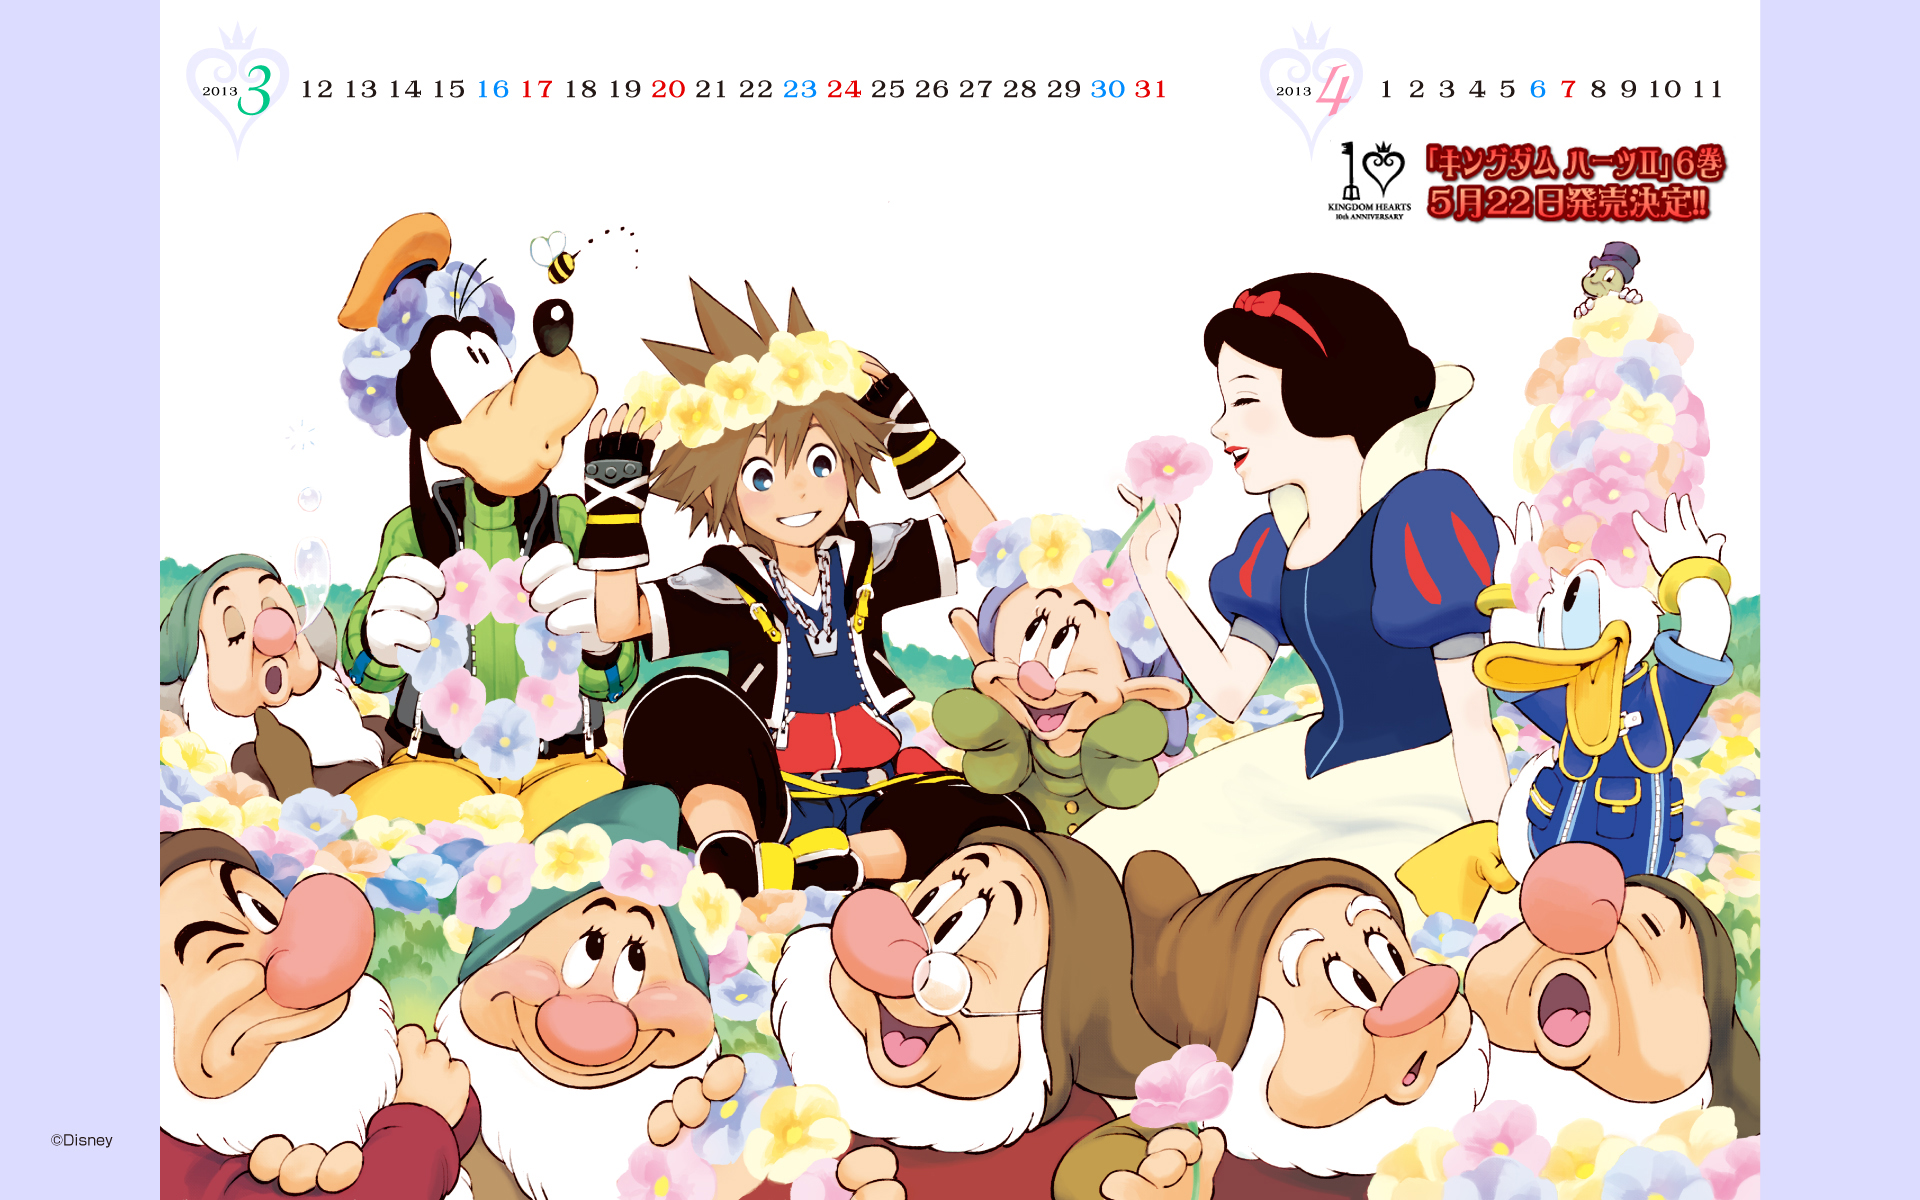 KINGDOM HEARTS 10th Anniversary Wallpaper #8! - News ...